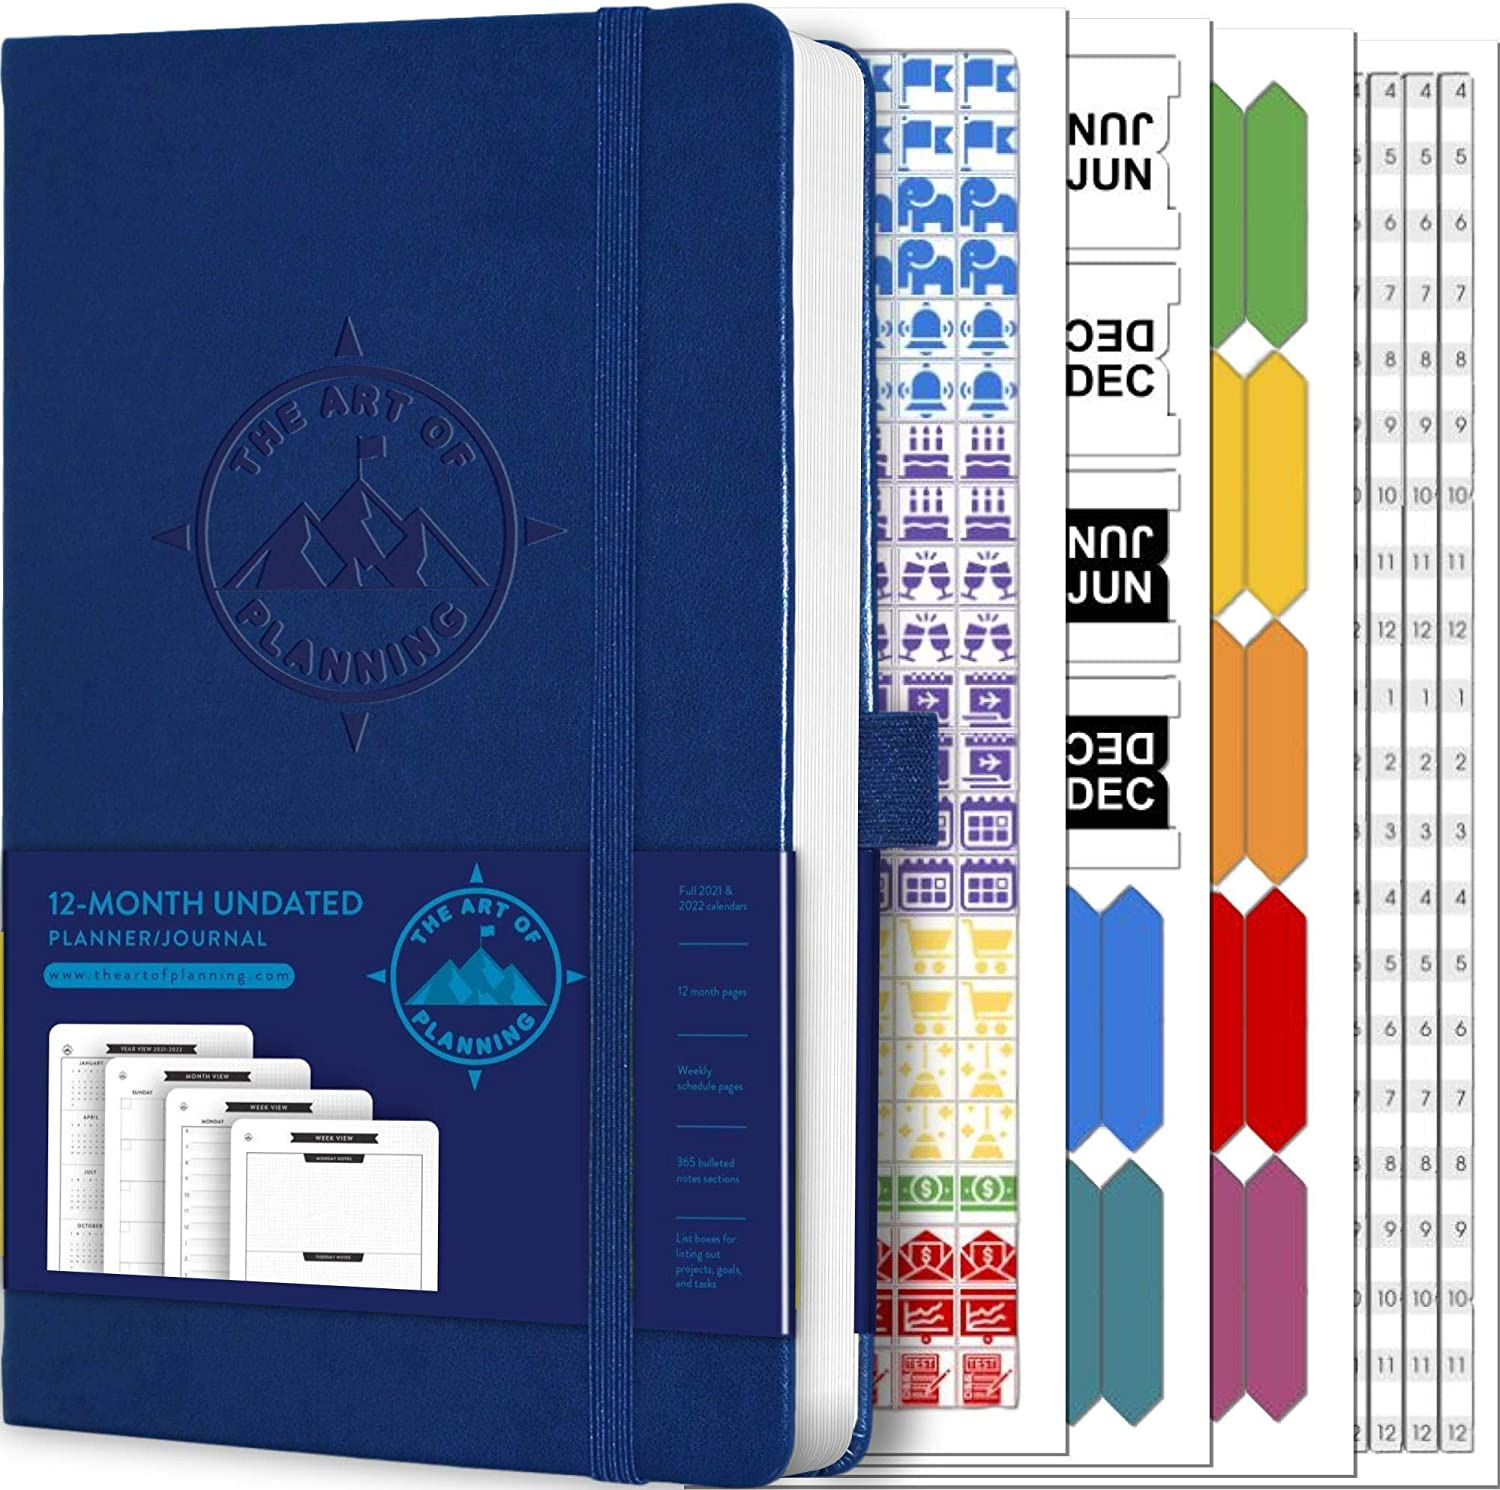 """Undated 12-Month Planner, Weekly Appointment Book, and 2021-2022 Calendar by The Art of Planning   Small 5""""x8"""" Hardcover   Dotted Notes   3 Bookmarks   Inner Pocket   Stickers"""